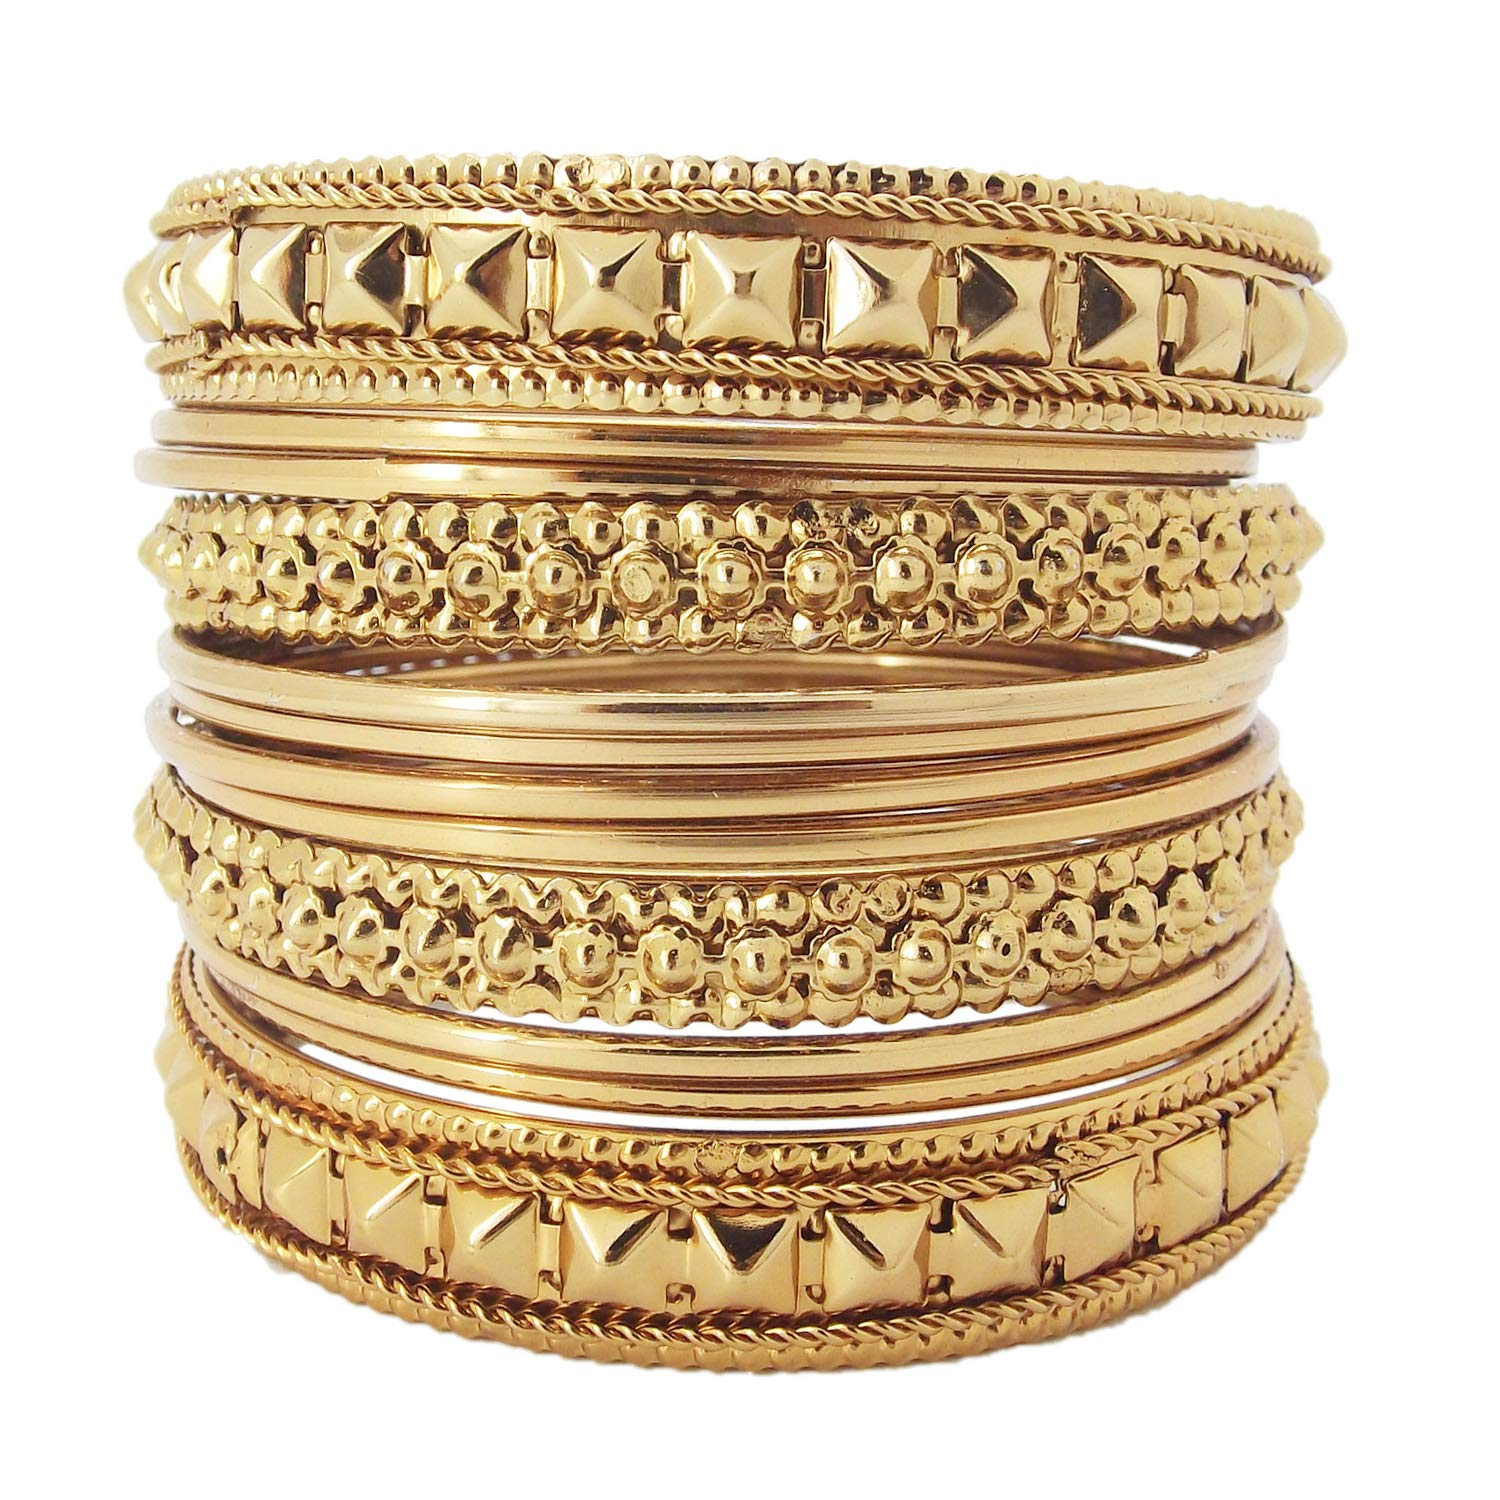 9blings Antique Collection 12pc Metal Gold Plated Bangles Chuda Womens Girls